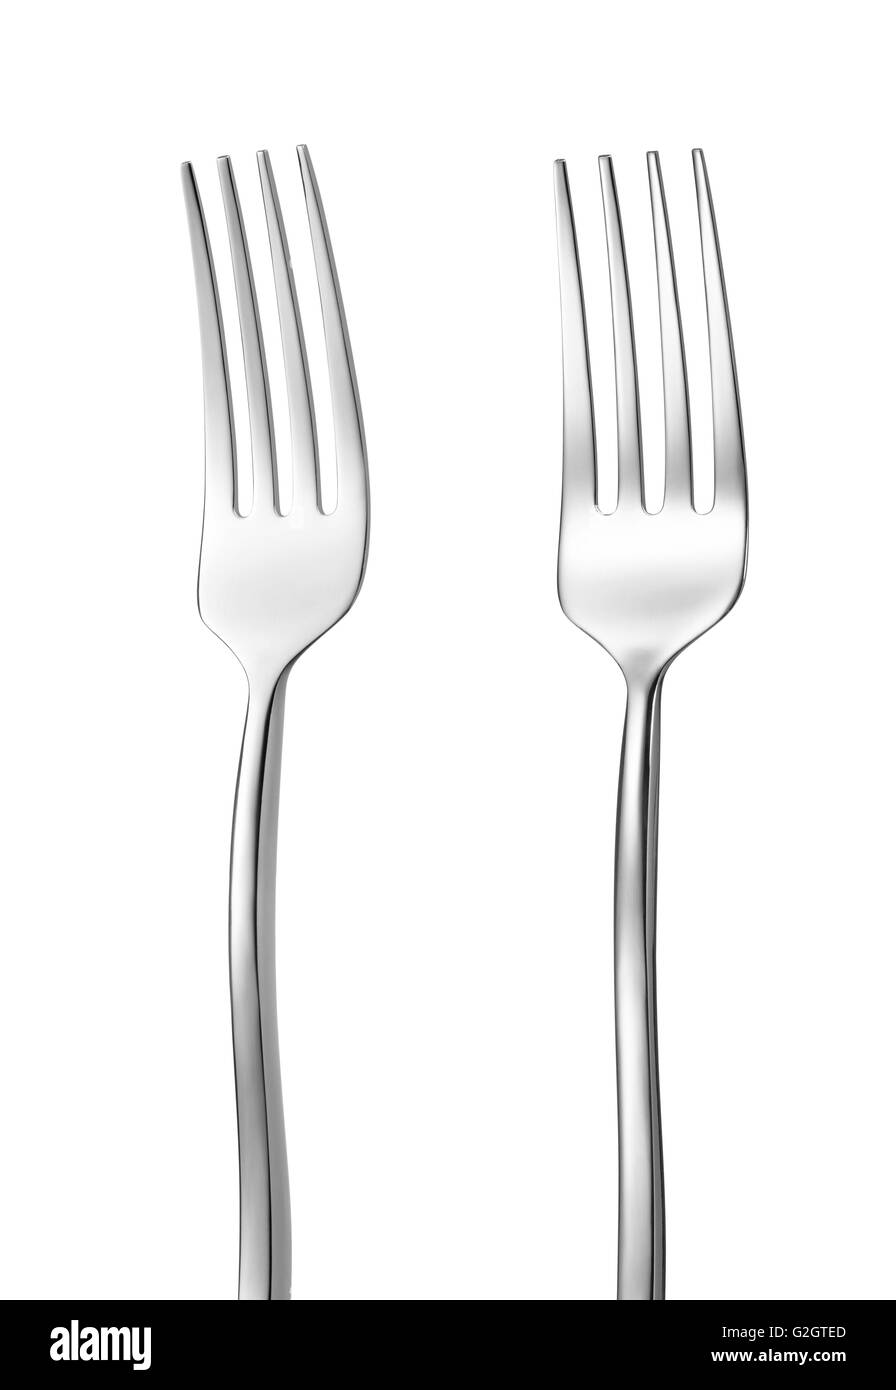 two steel forks isolated on white background - Stock Image